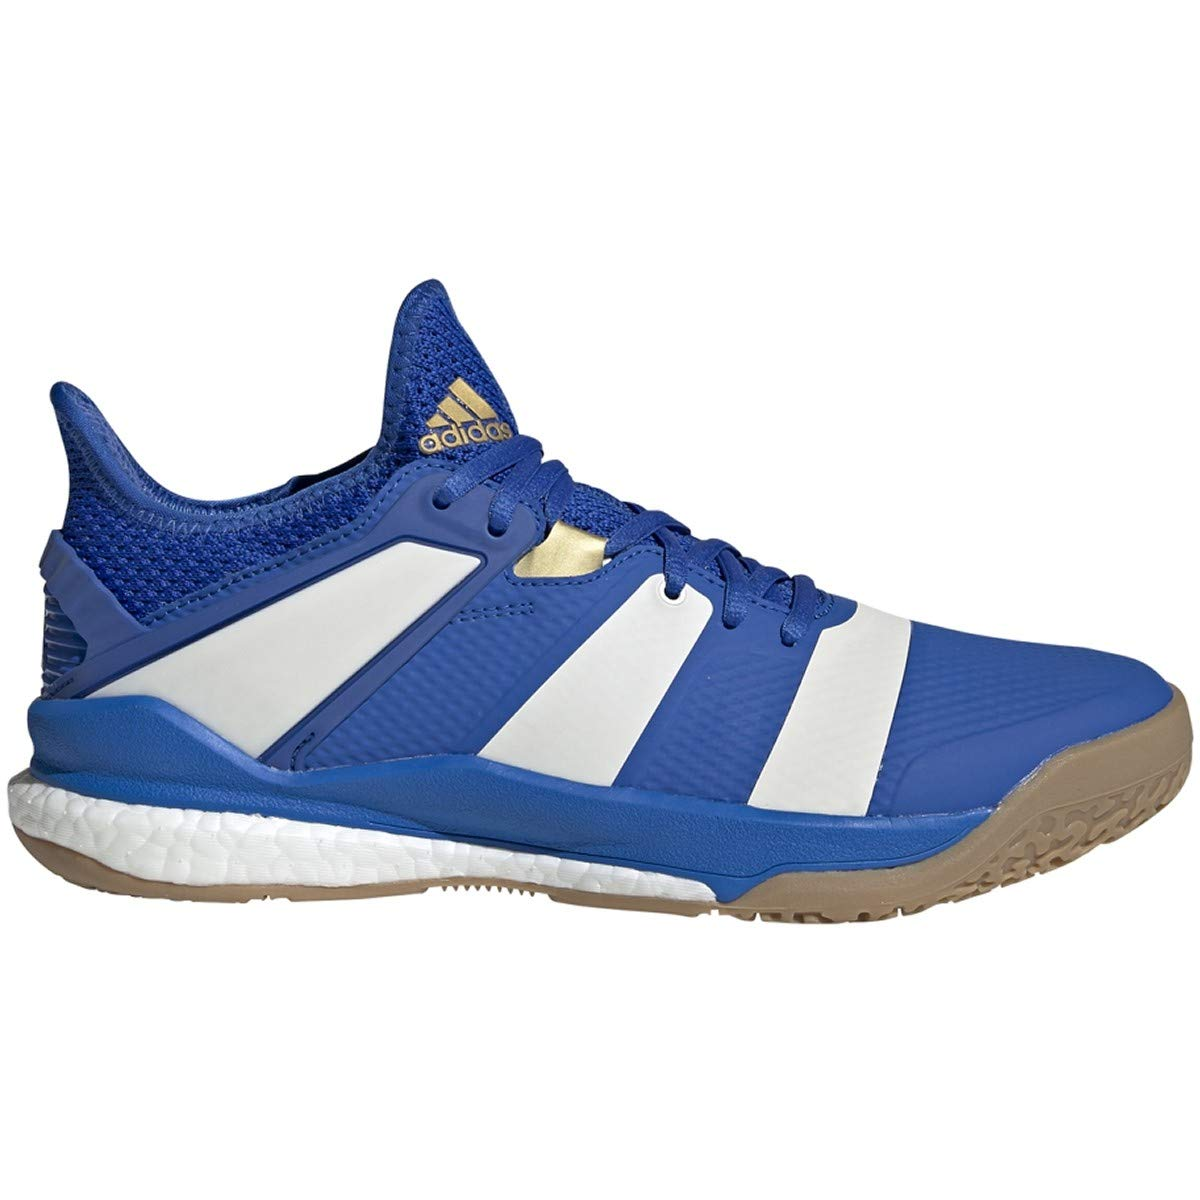 adidas Men's Stabil X Volleyball Shoe, Blue/Off White/Gold Metallic, 13 M US by adidas